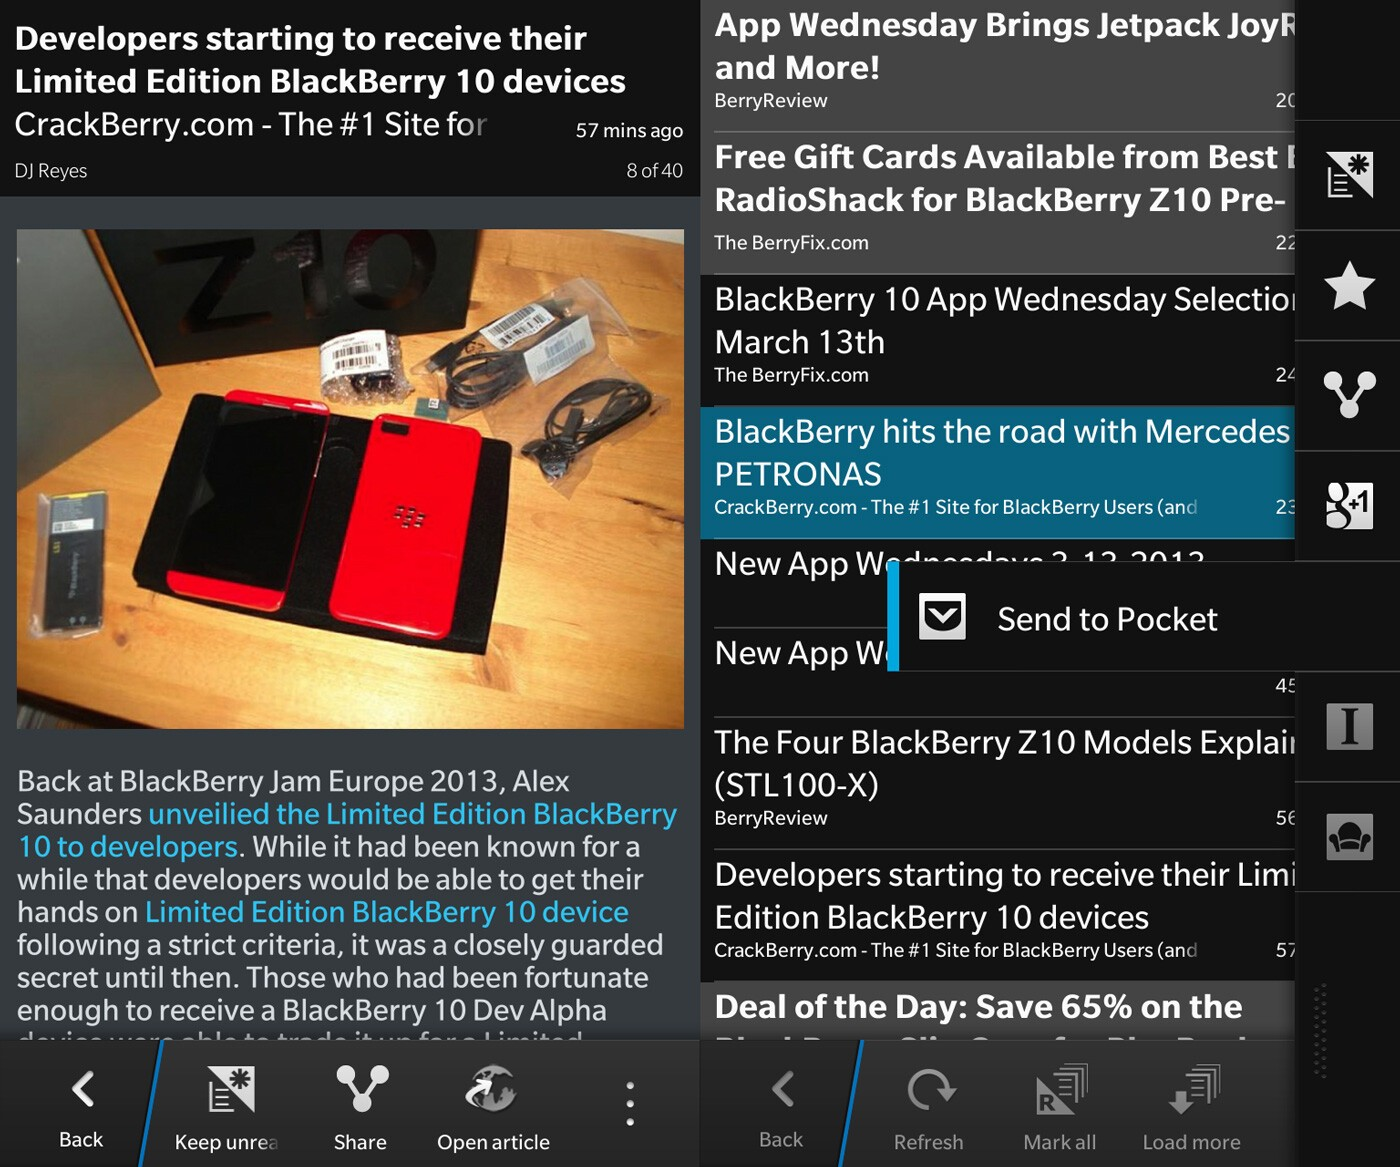 gNewsReader for BlackBerry